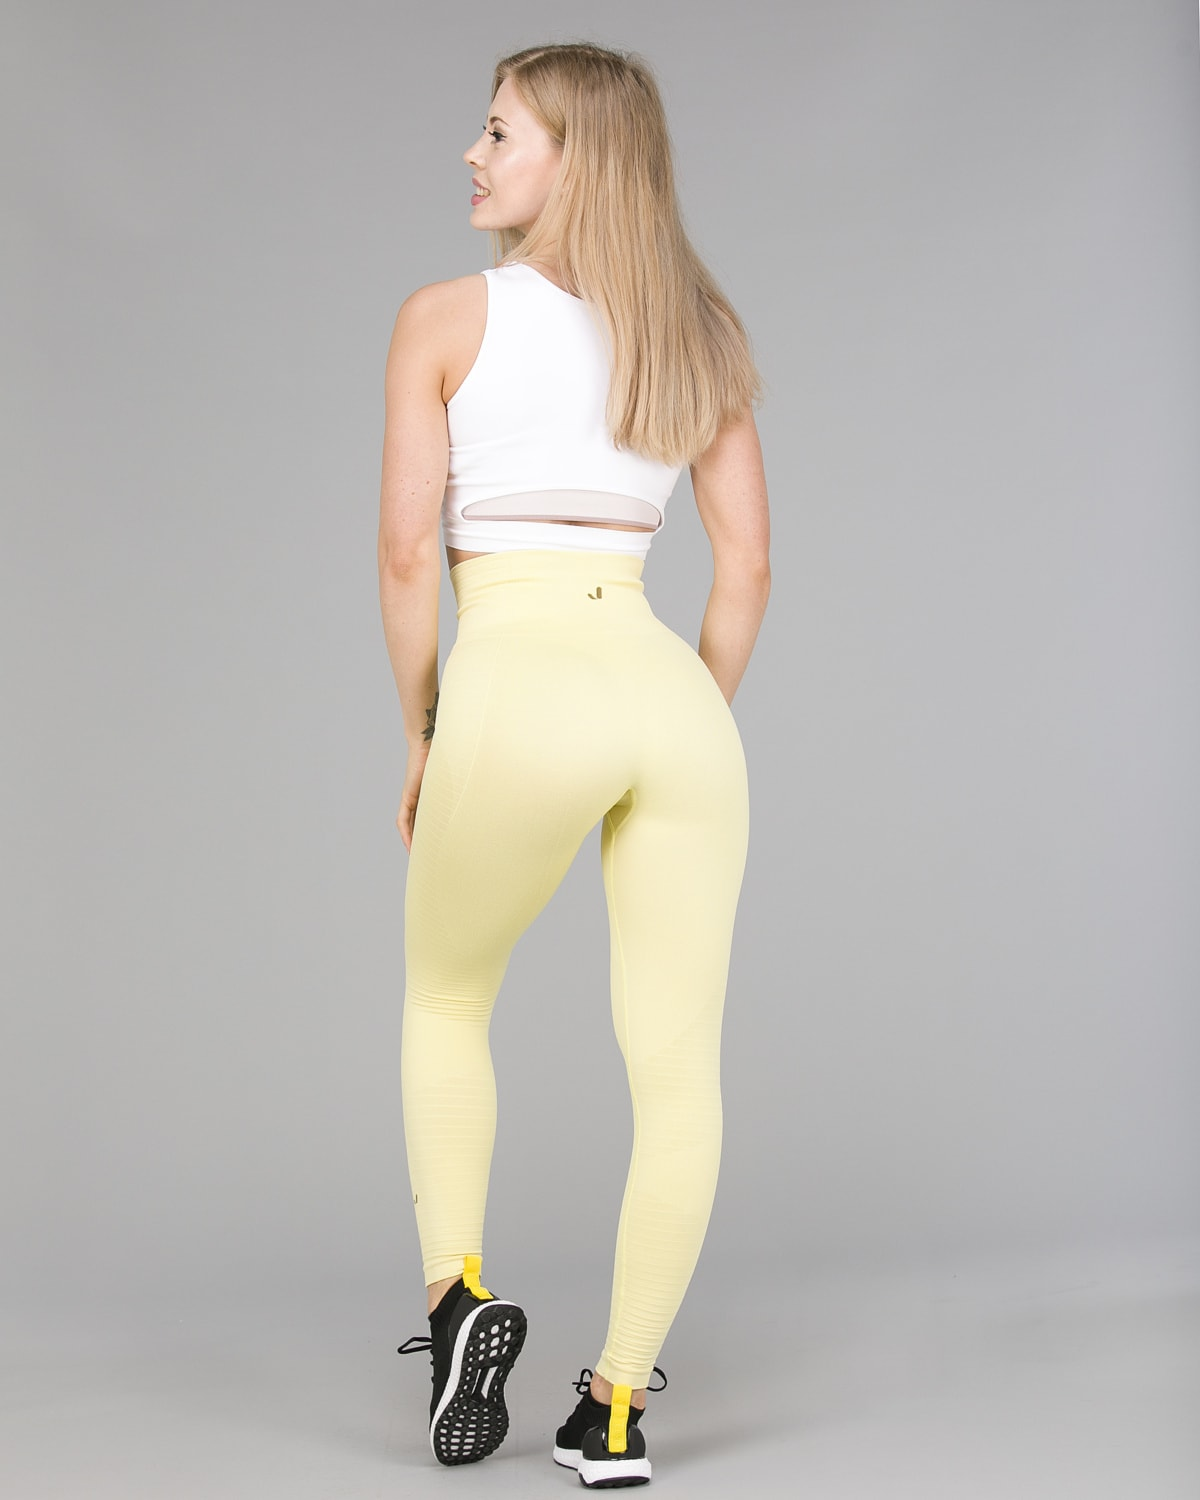 Jerf Gela 2.0 Tights Yellow Pastel4